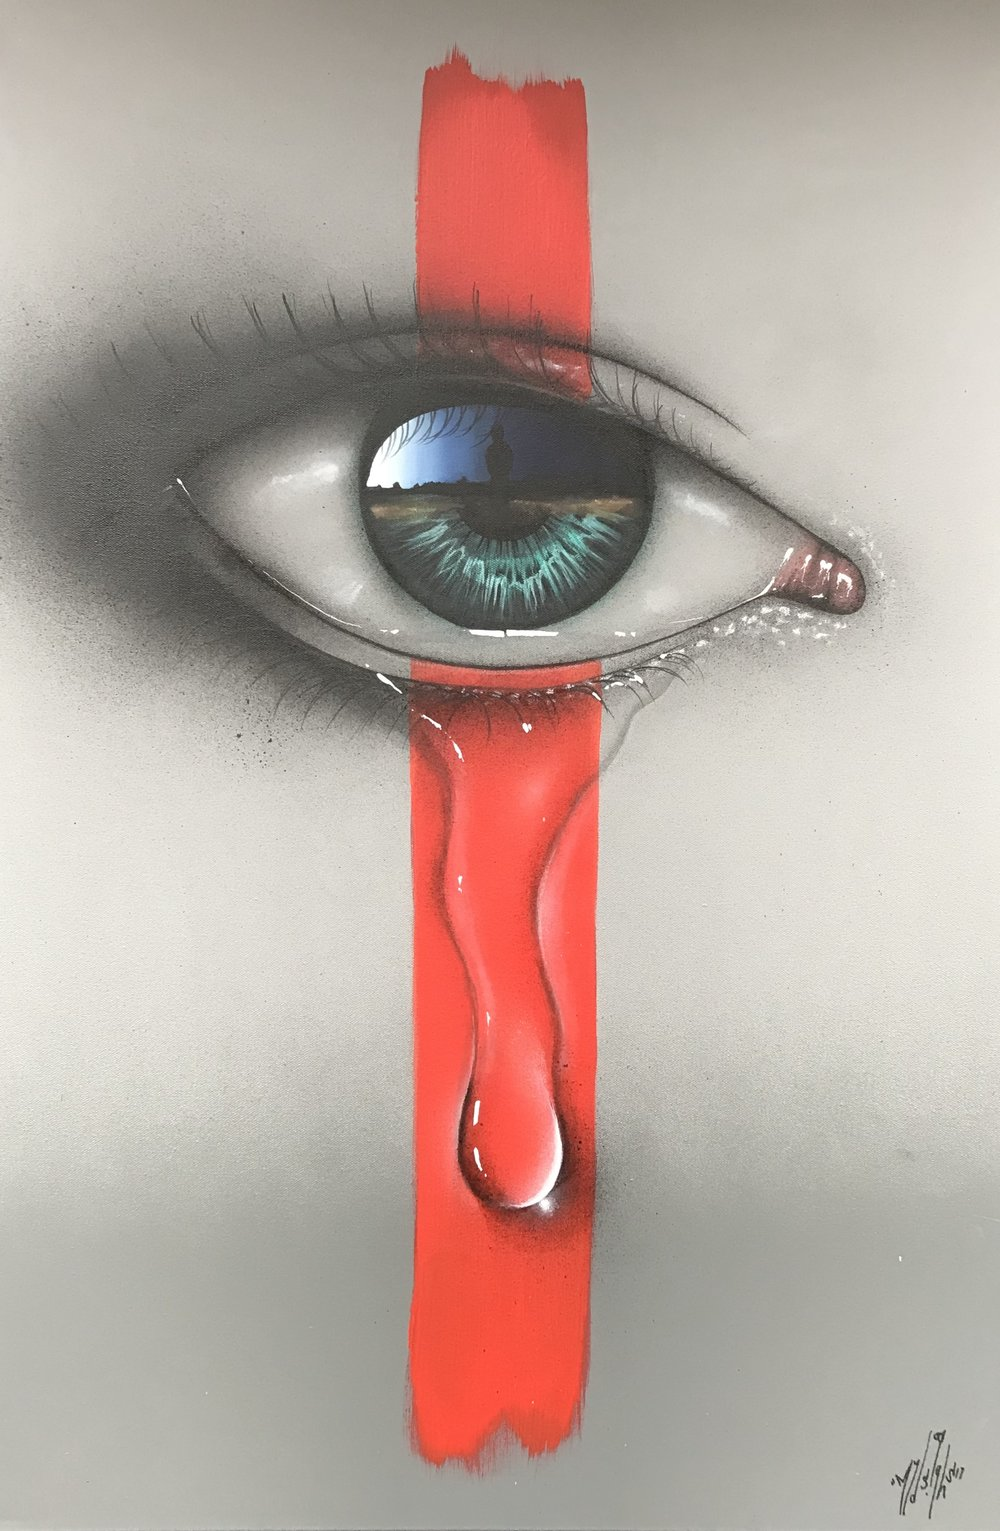 My Dog Sighs | I'm missing something